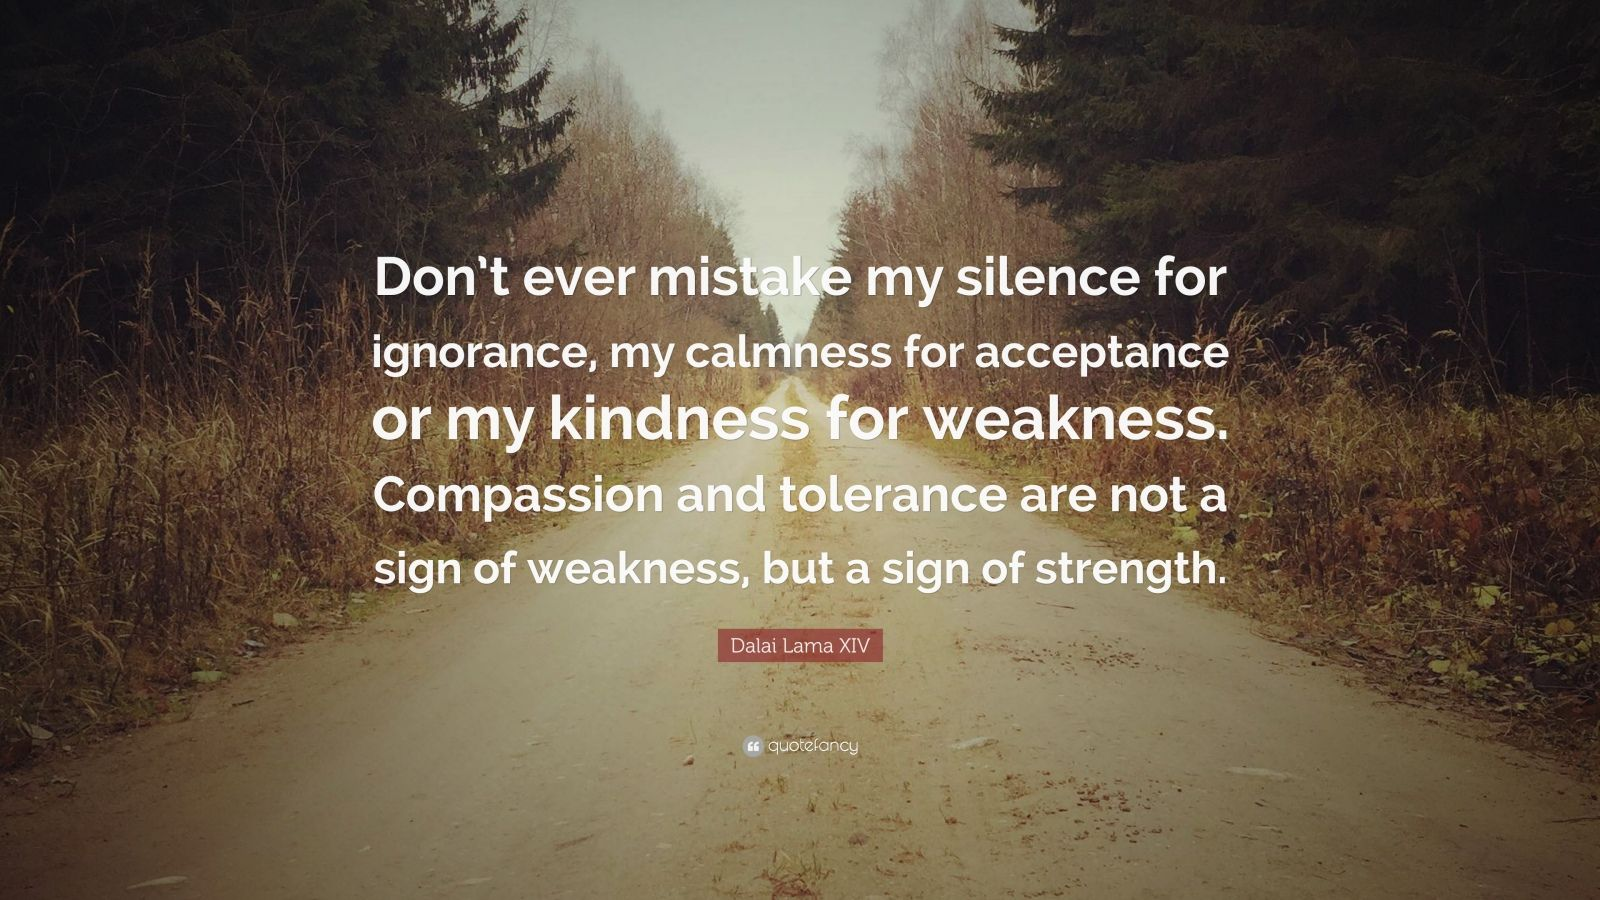 "Dalai Lama XIV Quote: ""Don't ever mistake my silence for ignorance, my calmness for acceptance or my kindness for weakness. Compassion and tolerance are not a sign of weakness, but a sign of strength."""